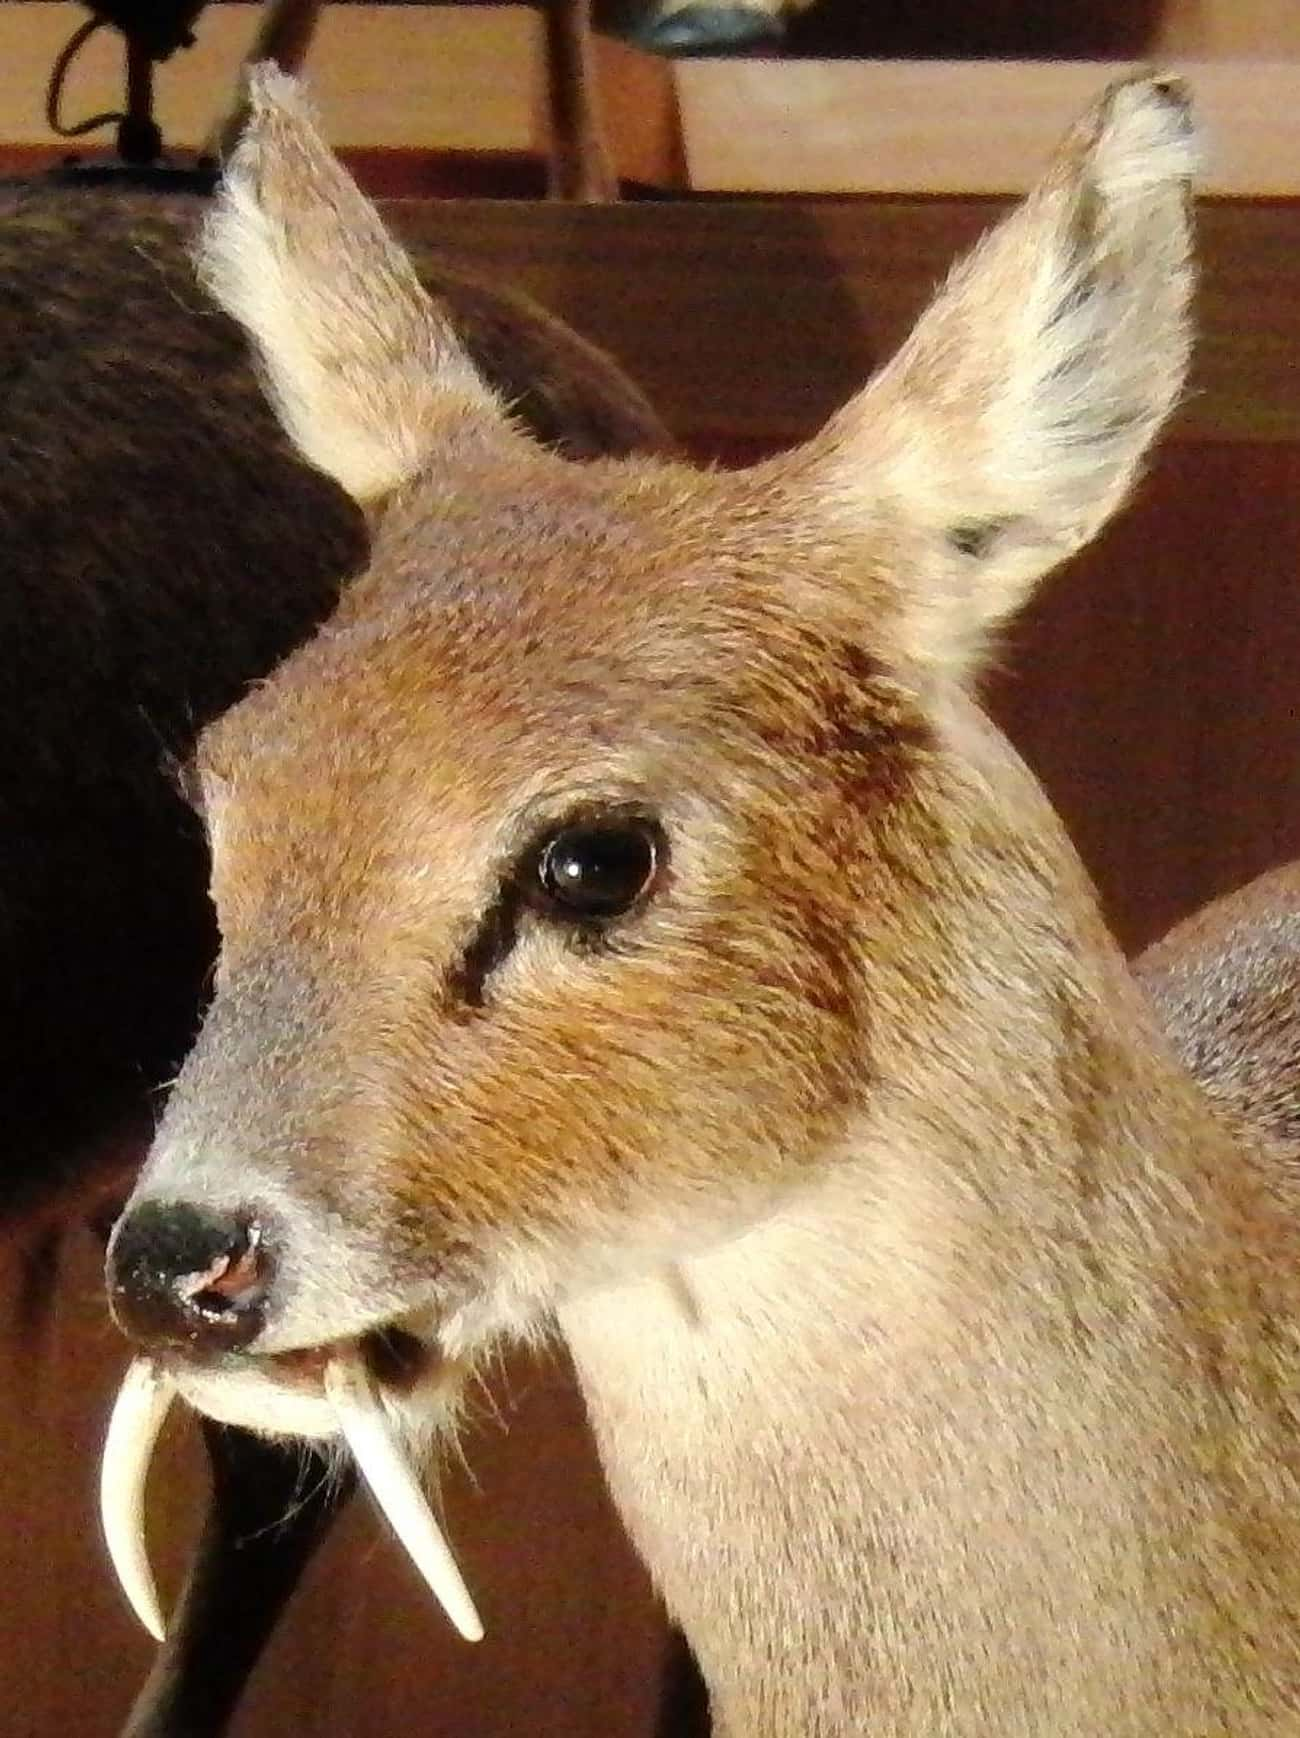 Chinese Water Deer is listed (or ranked) 2 on the list Rare Animals That Look Fake But Are In Fact 100% Real